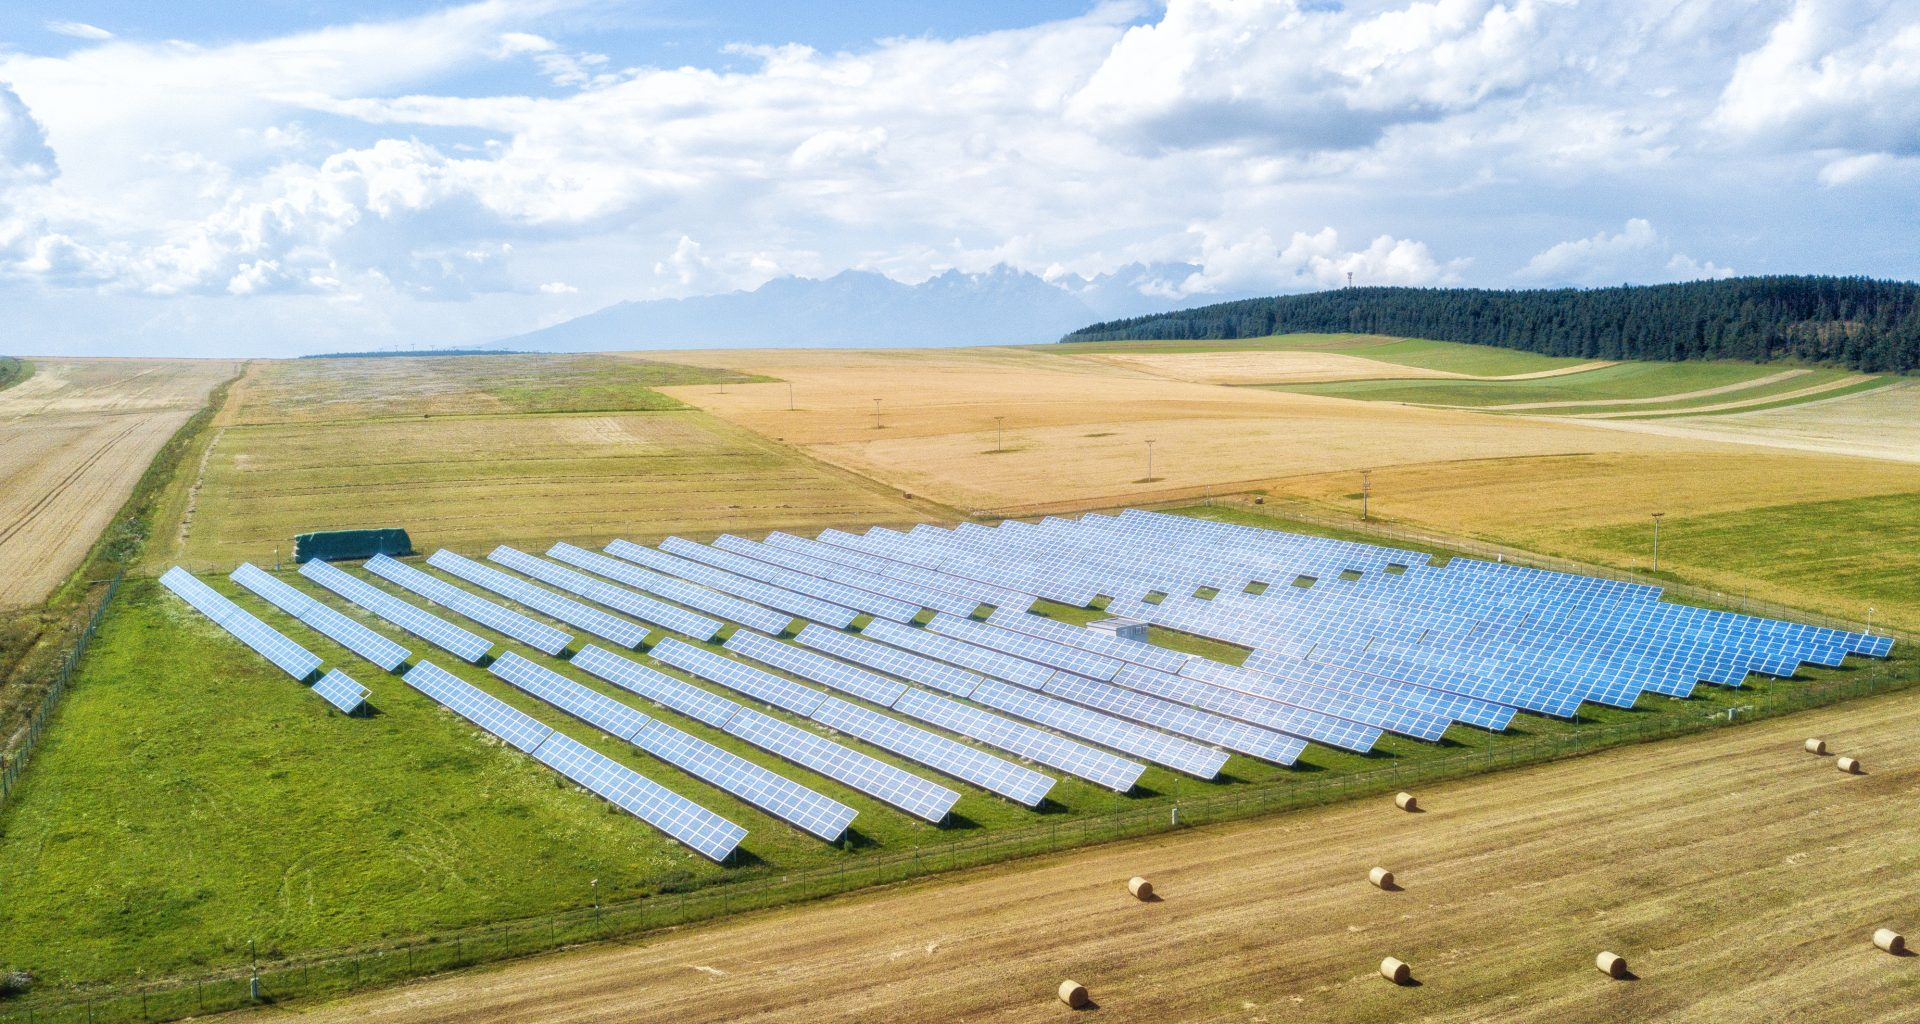 Managing solar parks for nature: delivering to the climate and ecological emergencies